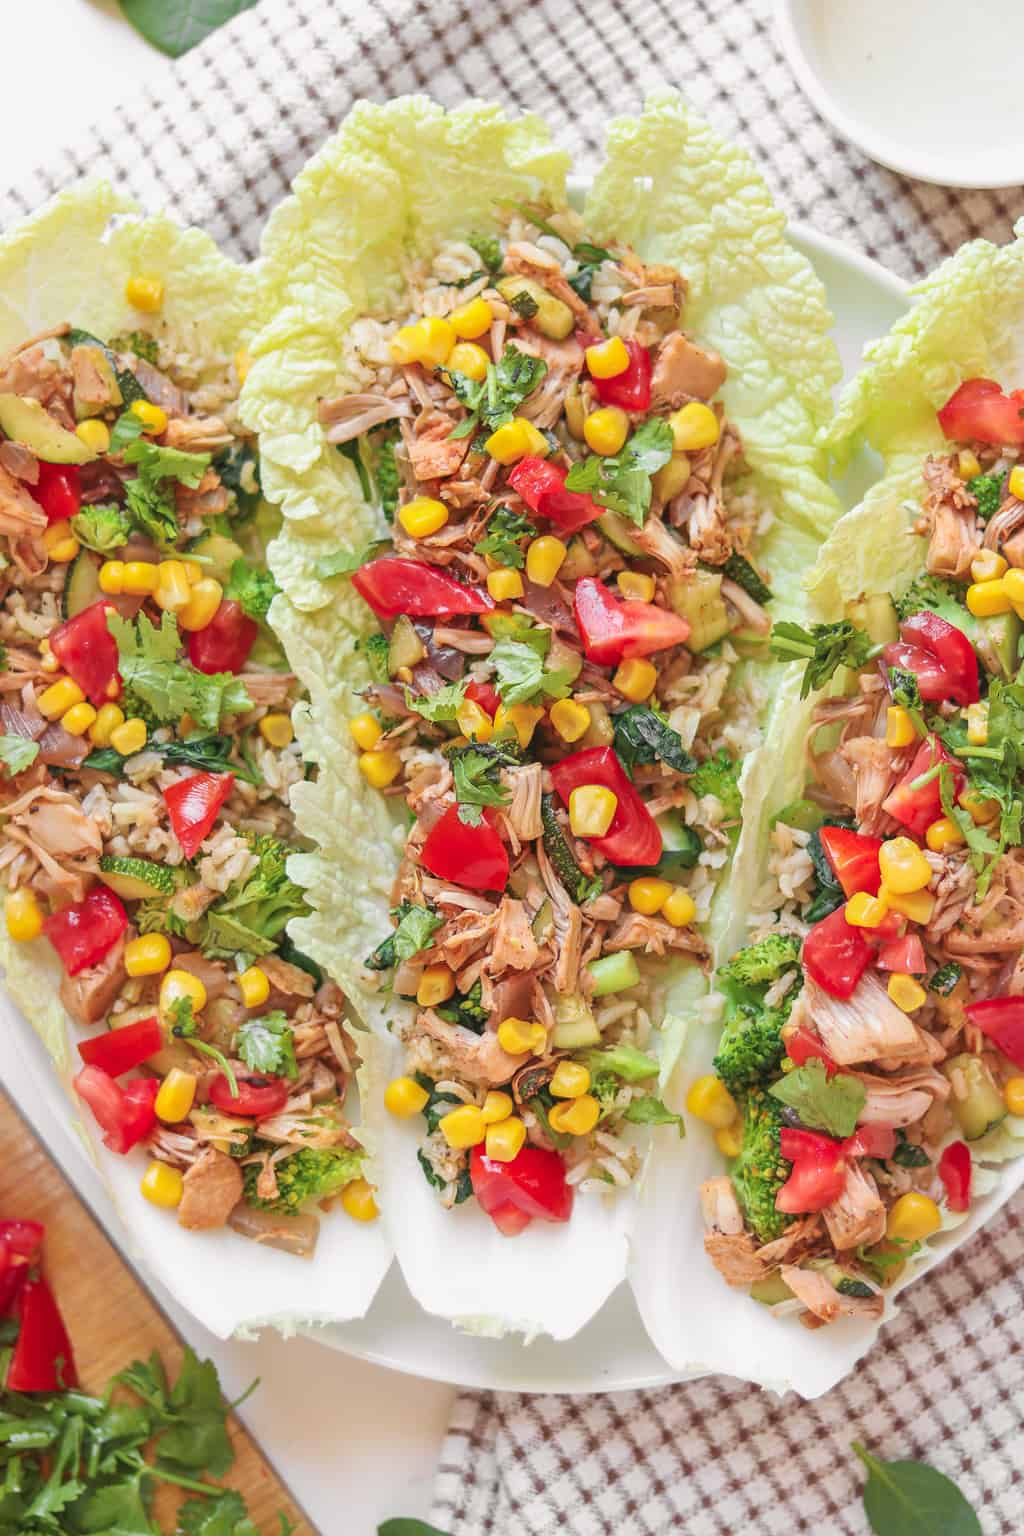 Vegan lettuce wraps with brown rice, jackfruit, sweetcorn and tomatoes